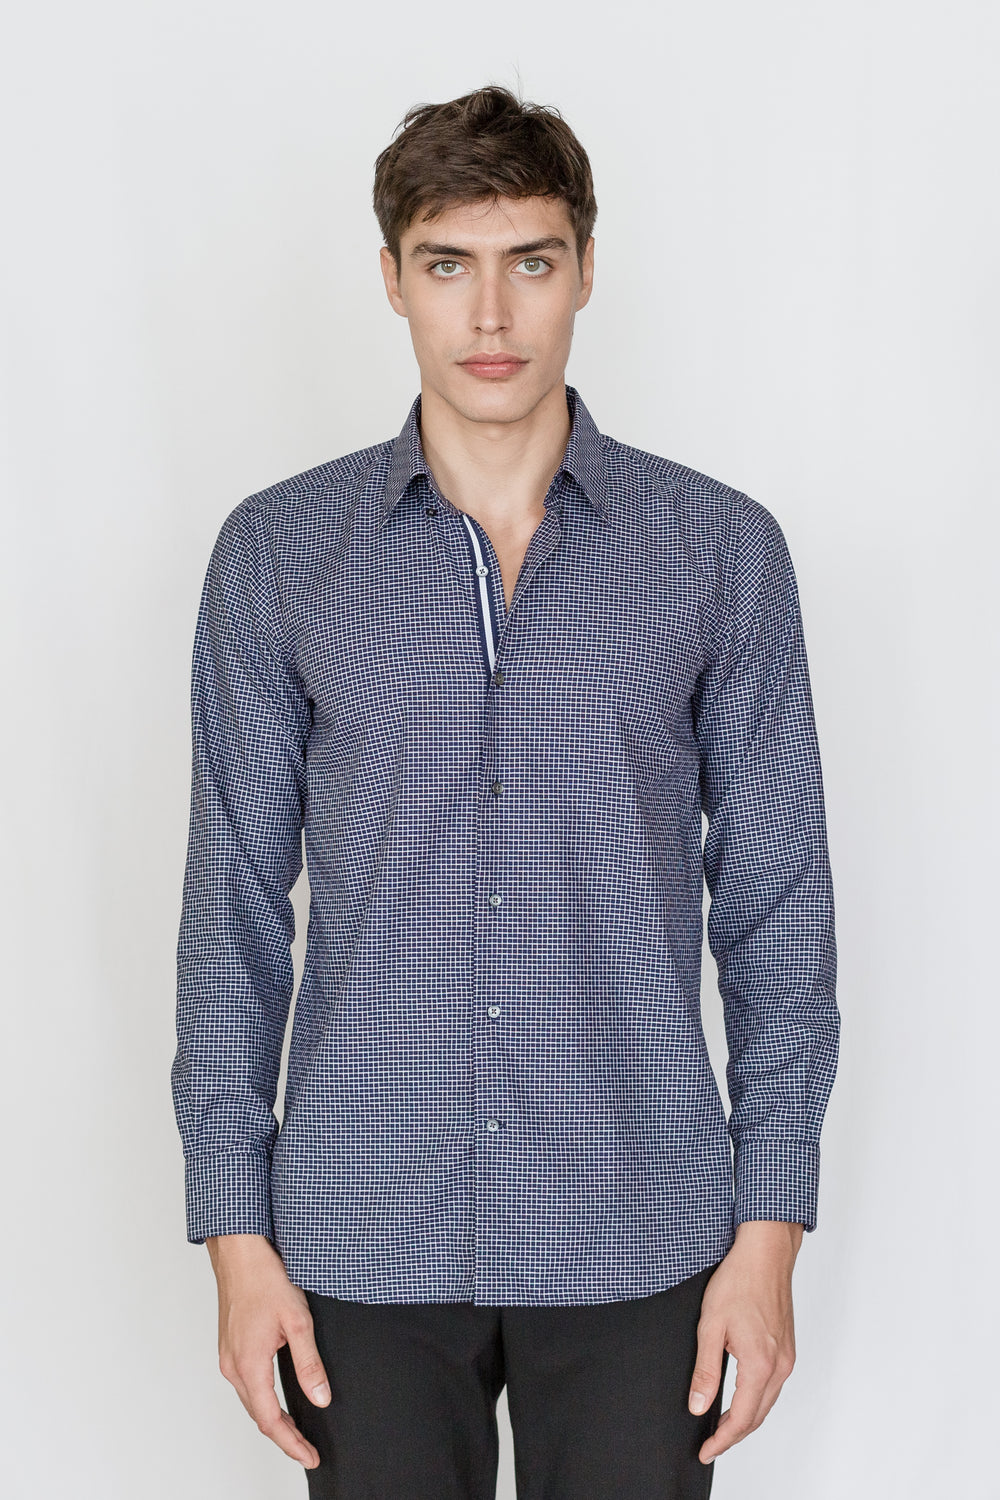 Mason Ward Gotland Navy Casual Check Fashion Fit/ Regular Cuff Shirt